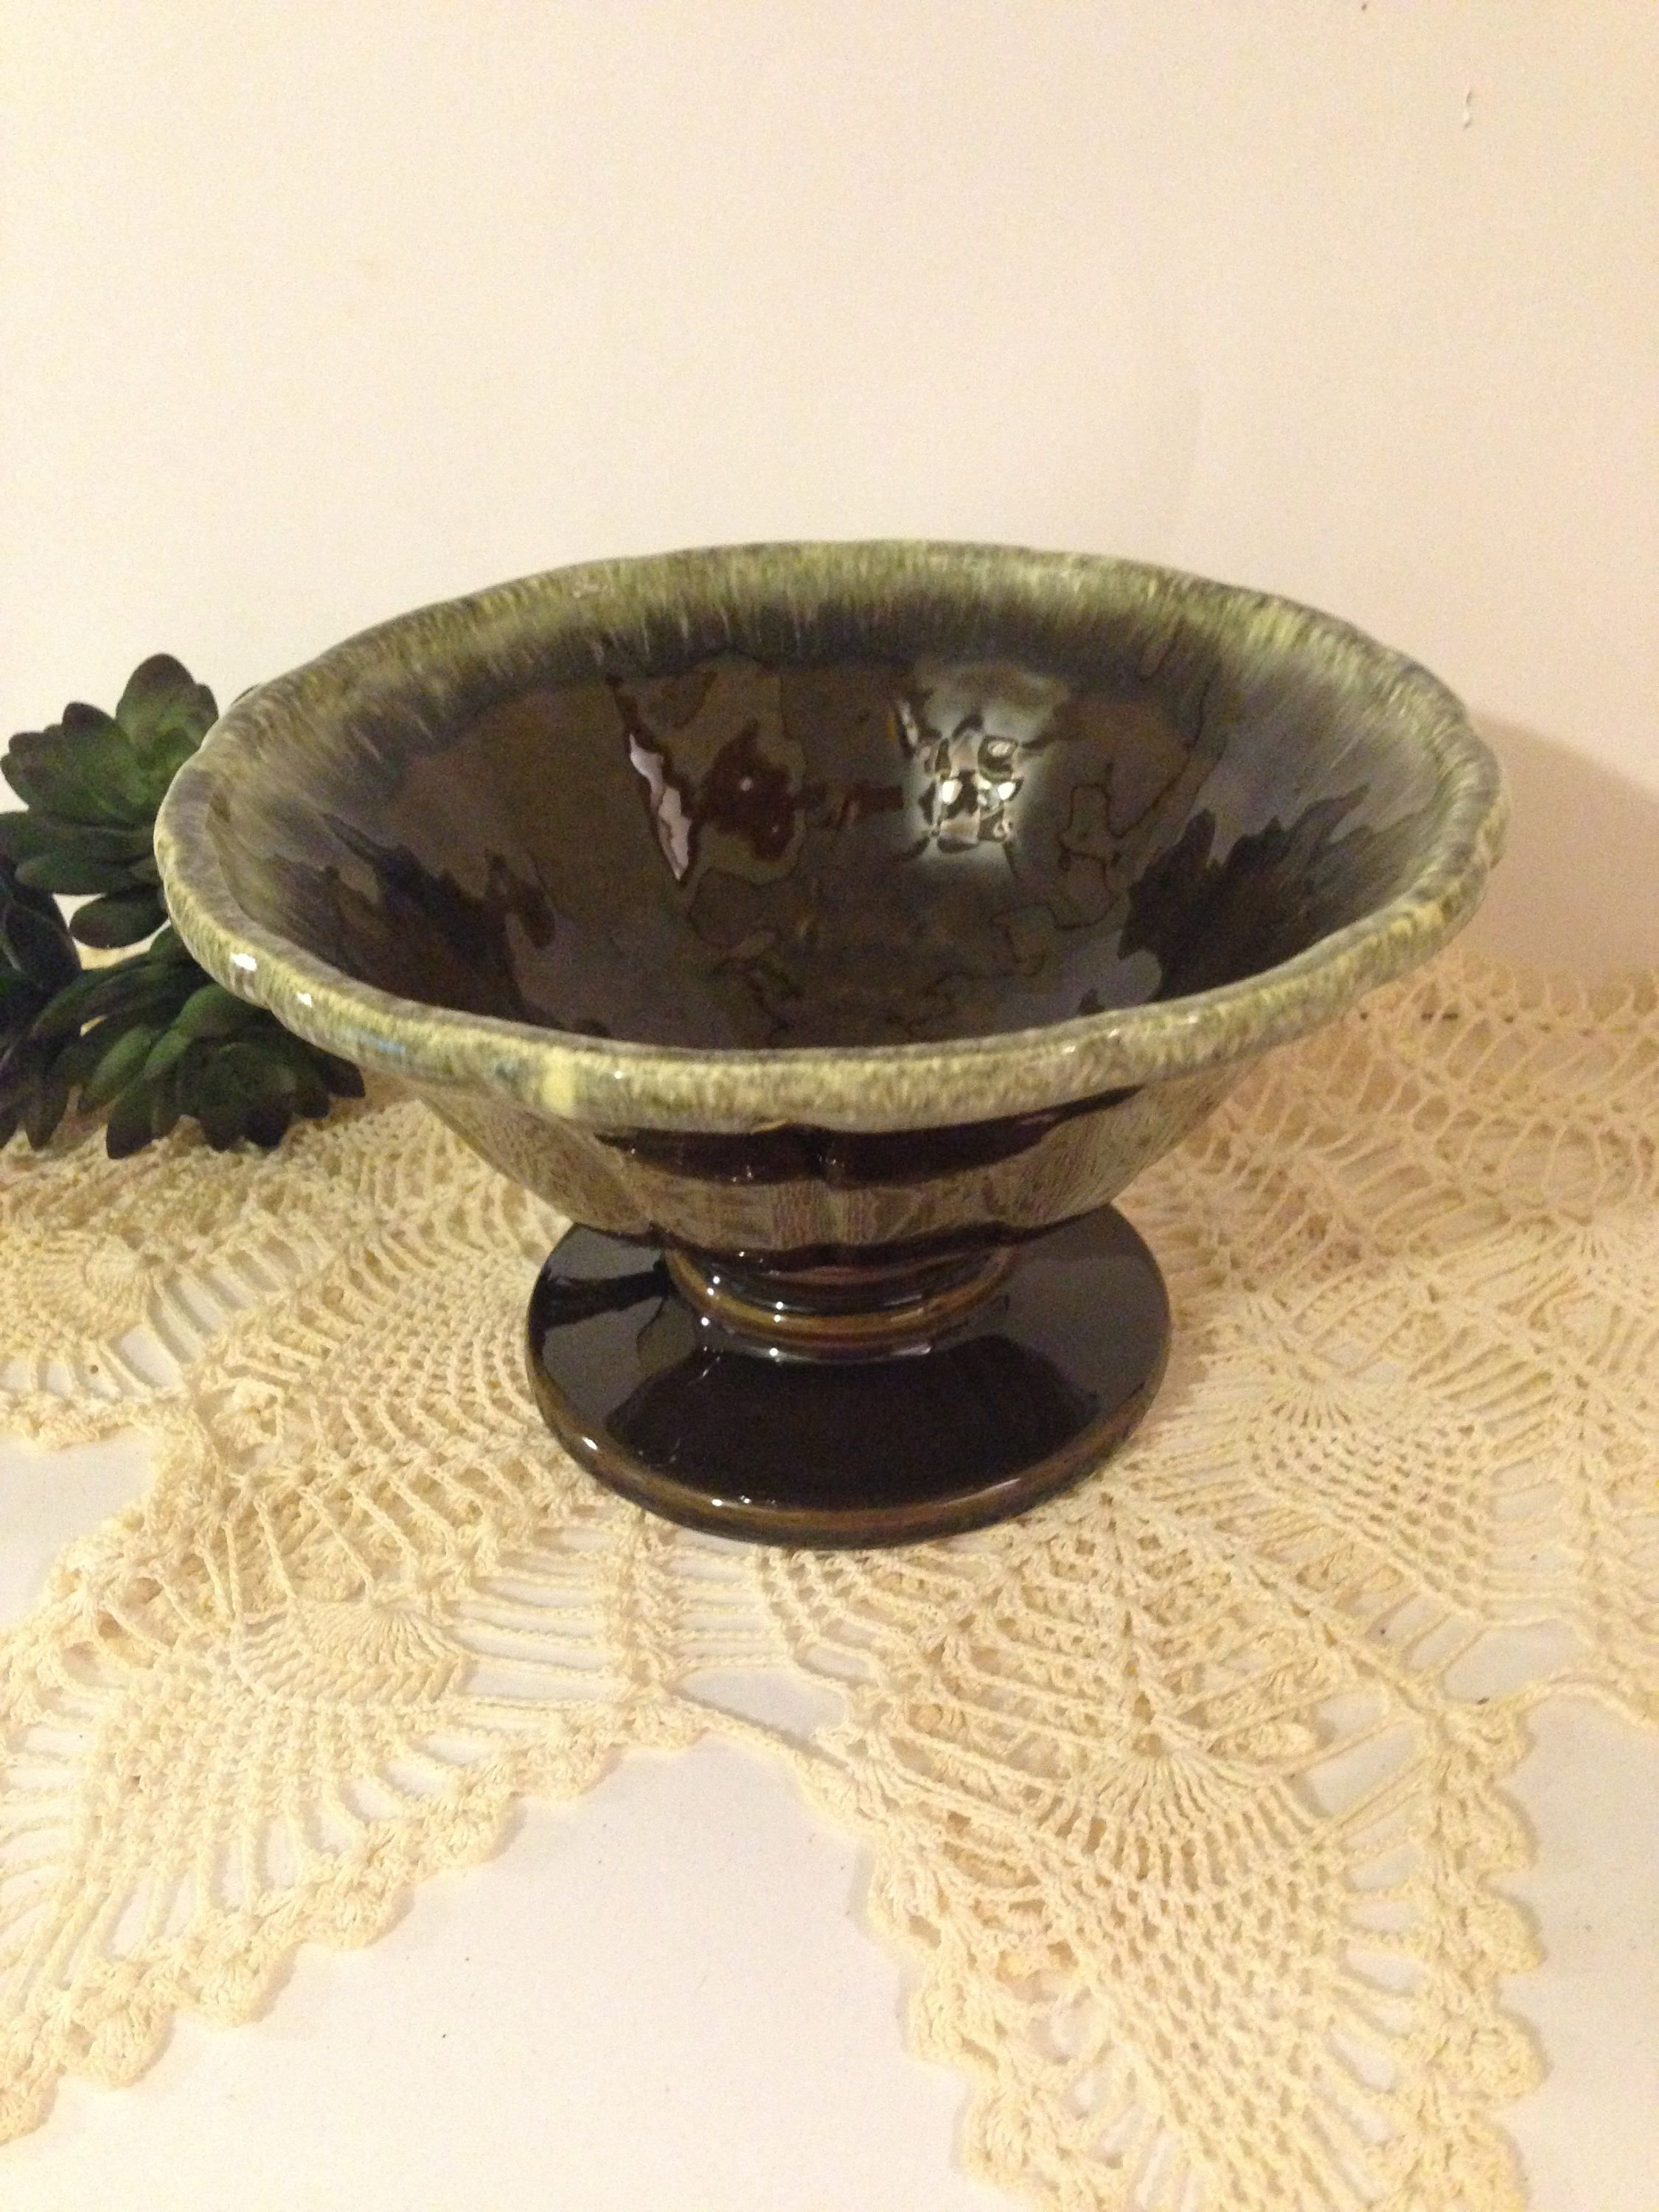 Vintage hull usa pottery pedestal bowl compote planter vase vintage hull usa pottery pedestal bowl compote planter vase usa f95 reviewsmspy